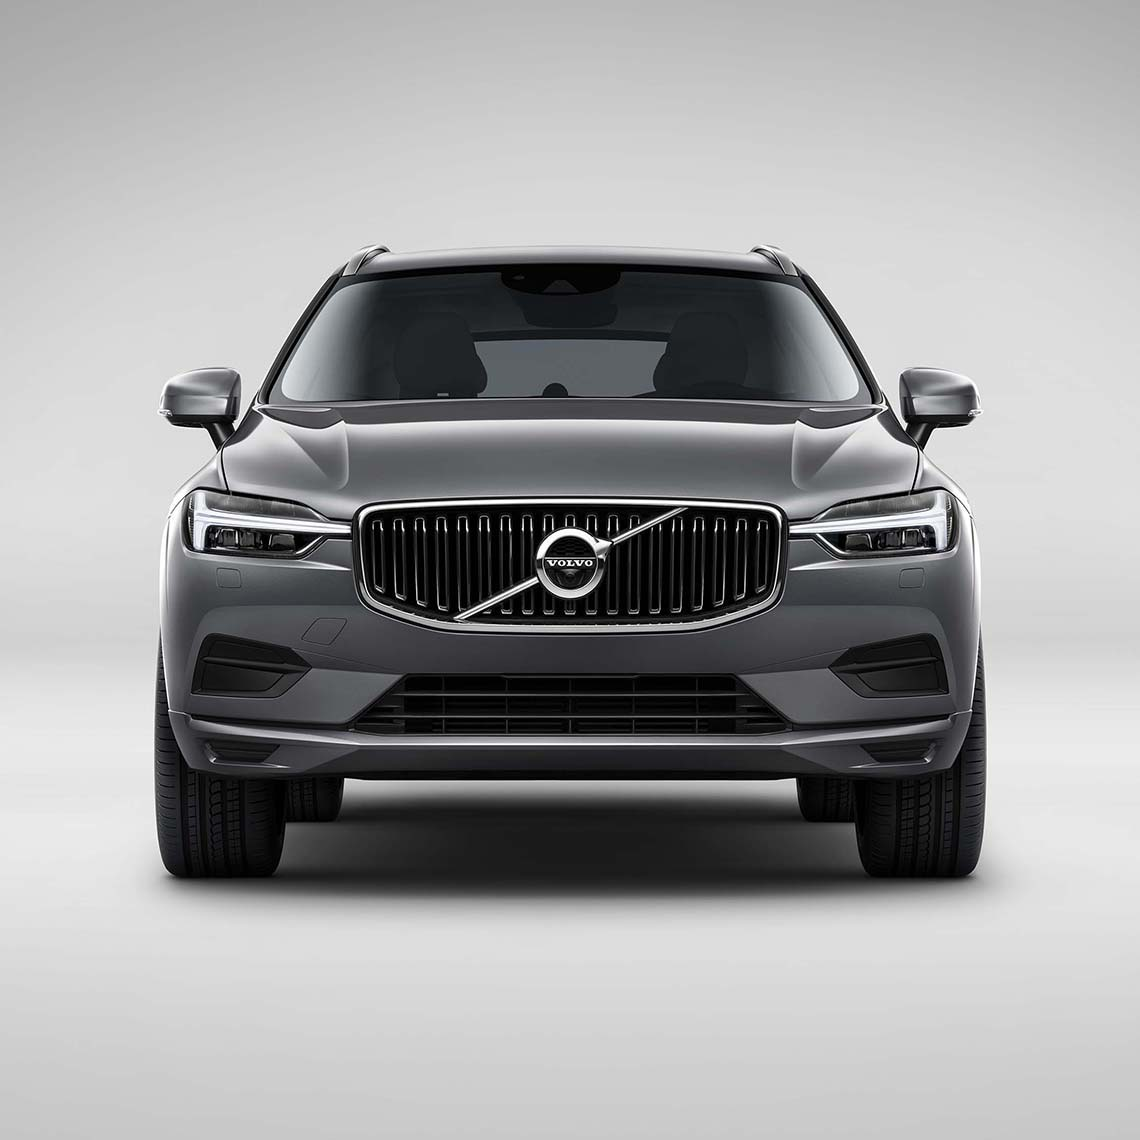 2018 All-New XC60 Luxury SUV